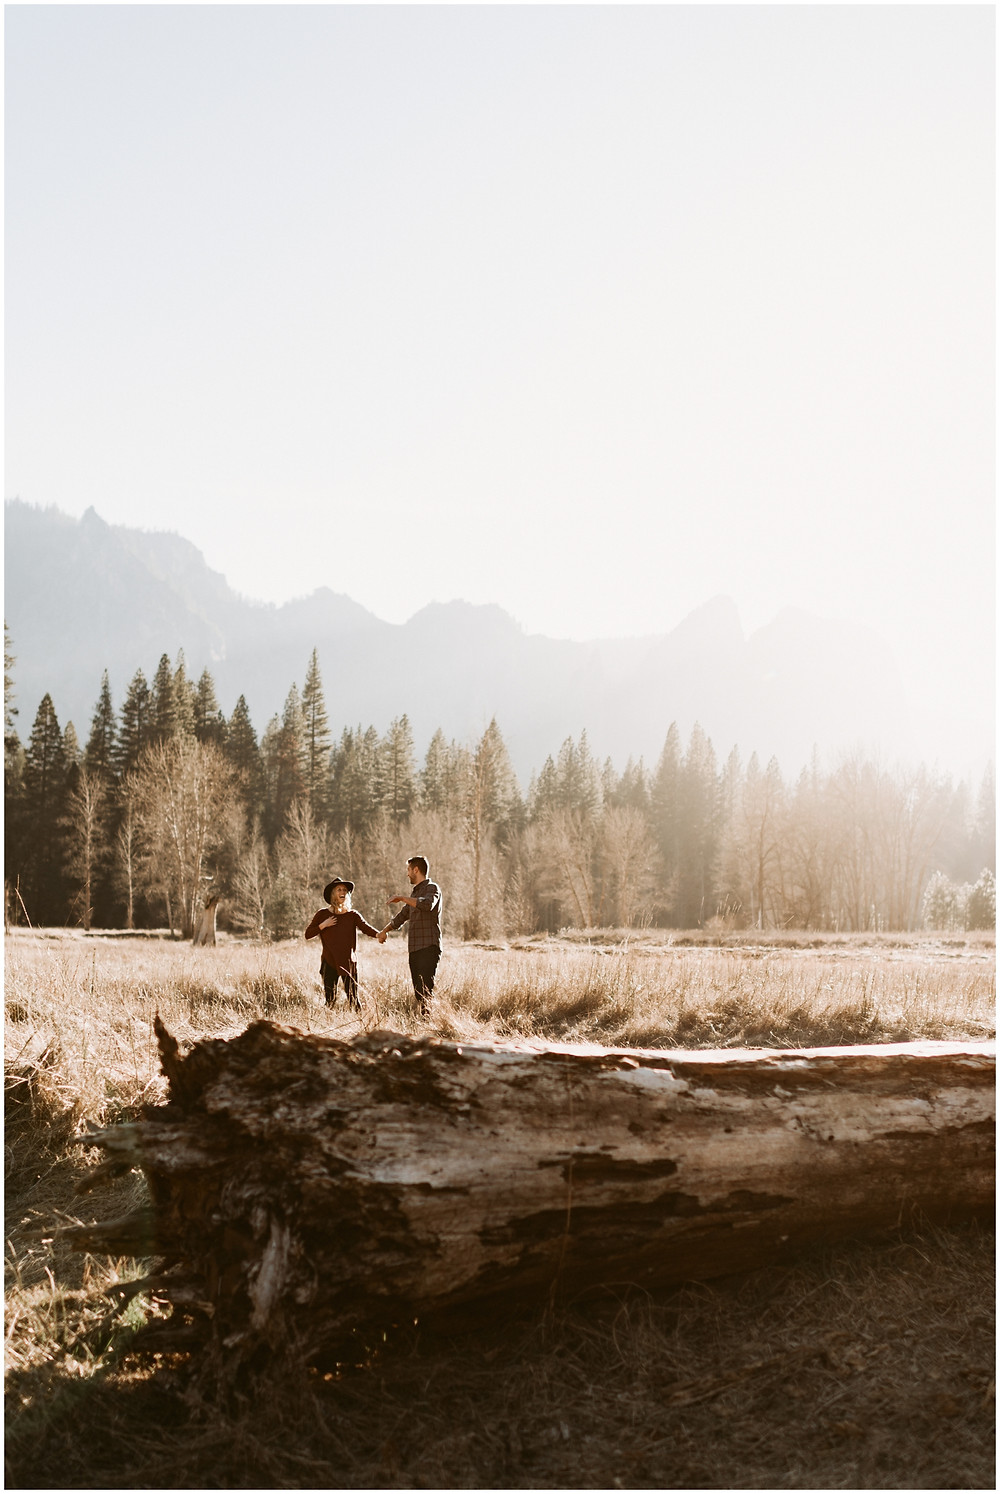 Boho, laid-back couple's session in Yosemite, California by Mountainaire Gatherings